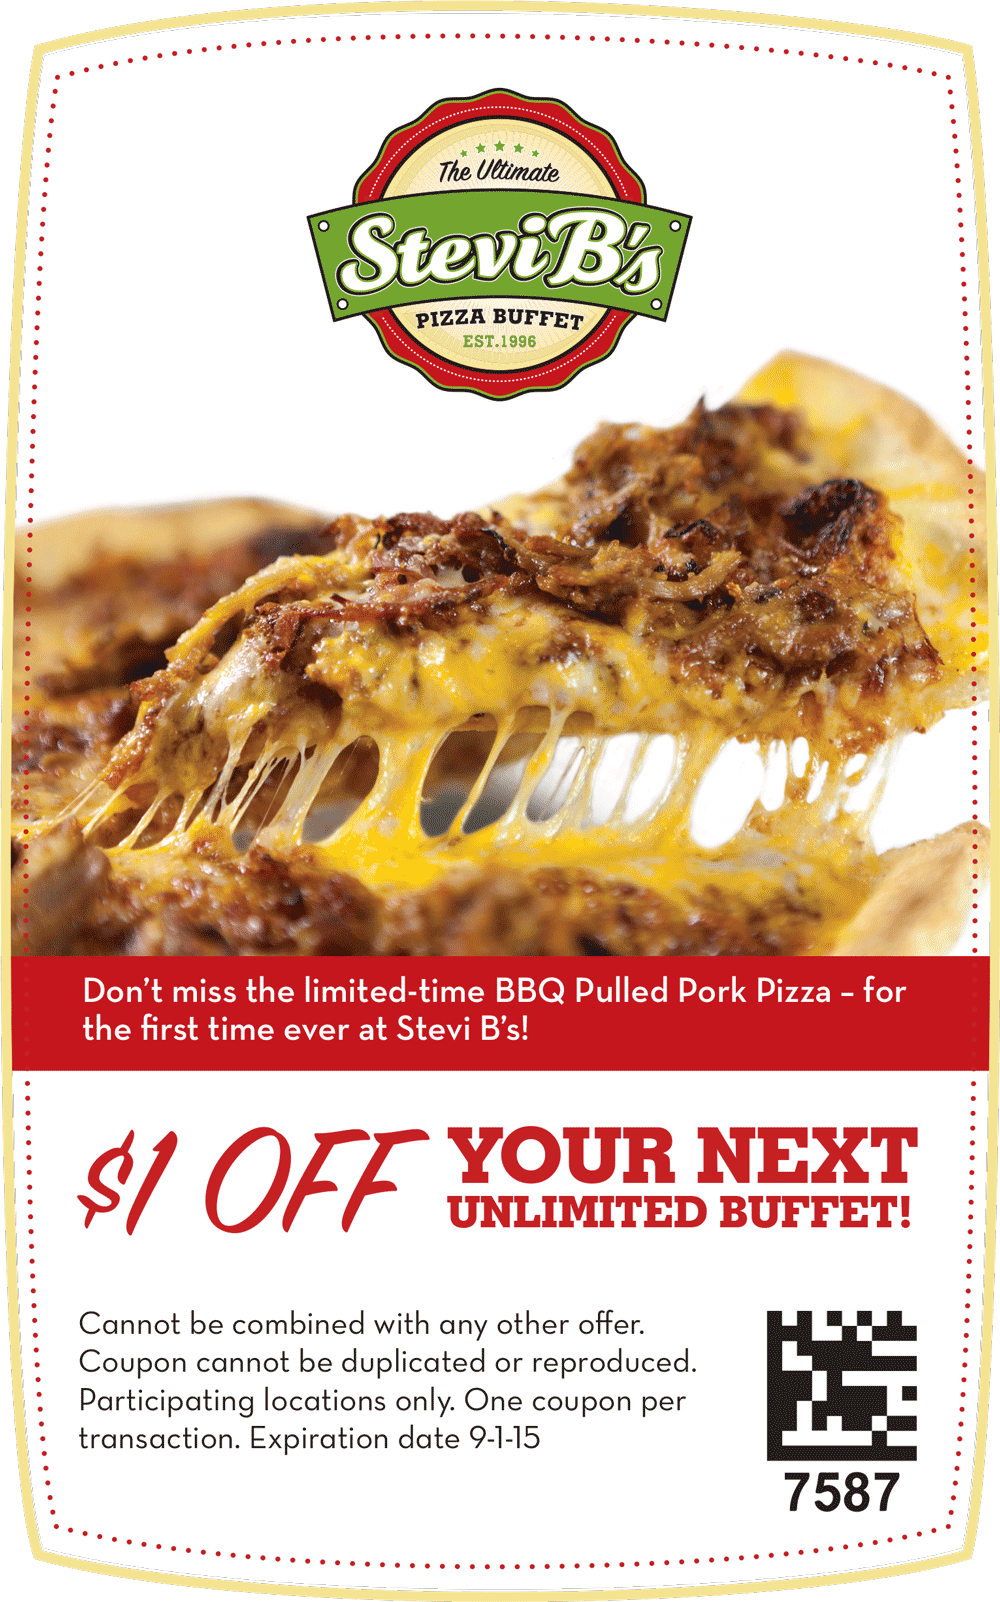 Stevi Bs Coupon July 2017 Shave a buck off your buffet at Stevi Bs pizza